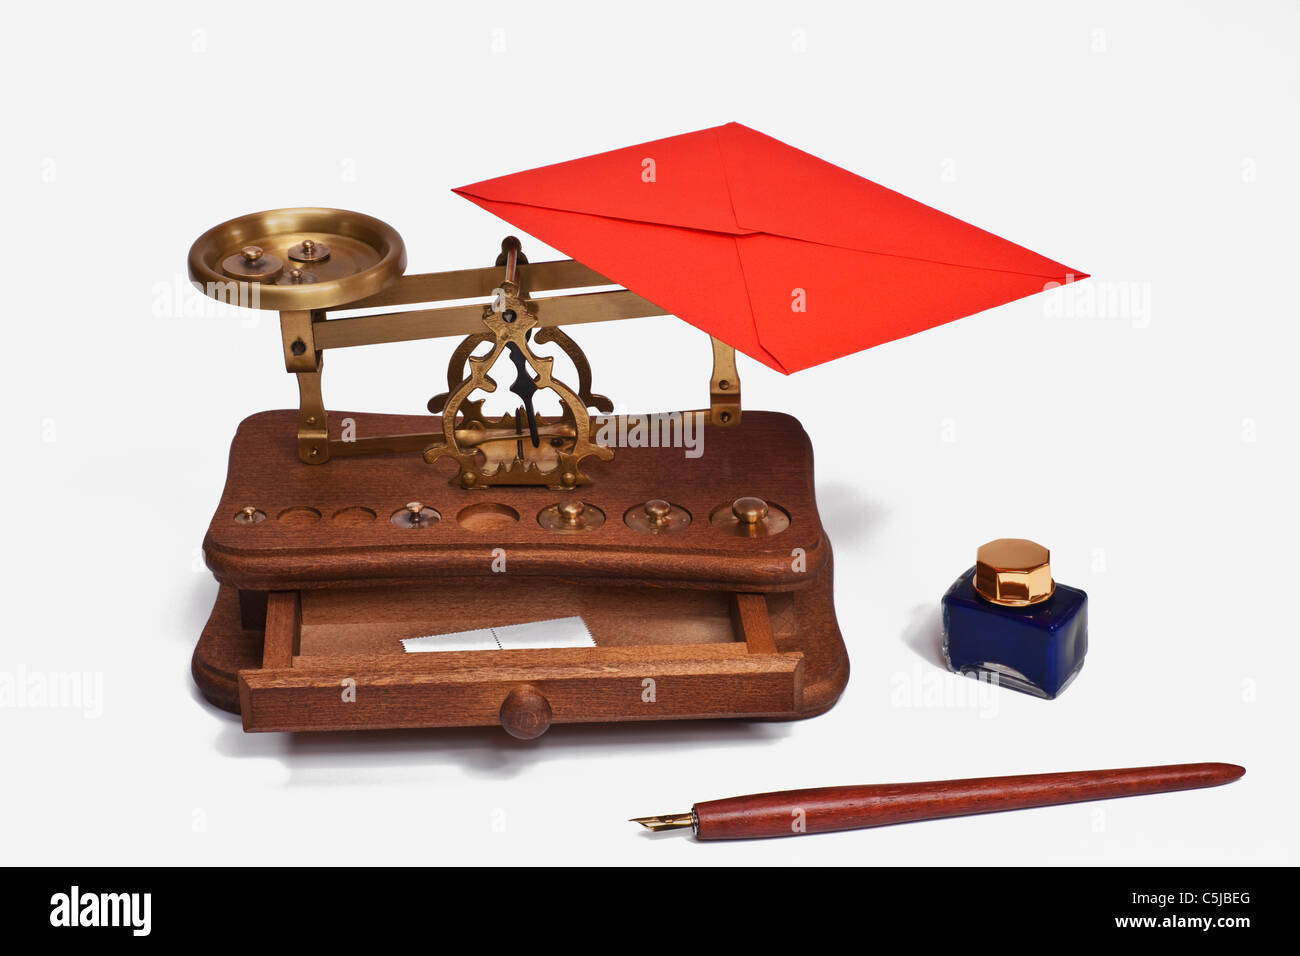 Briefwaage | letter balance - Stock Image